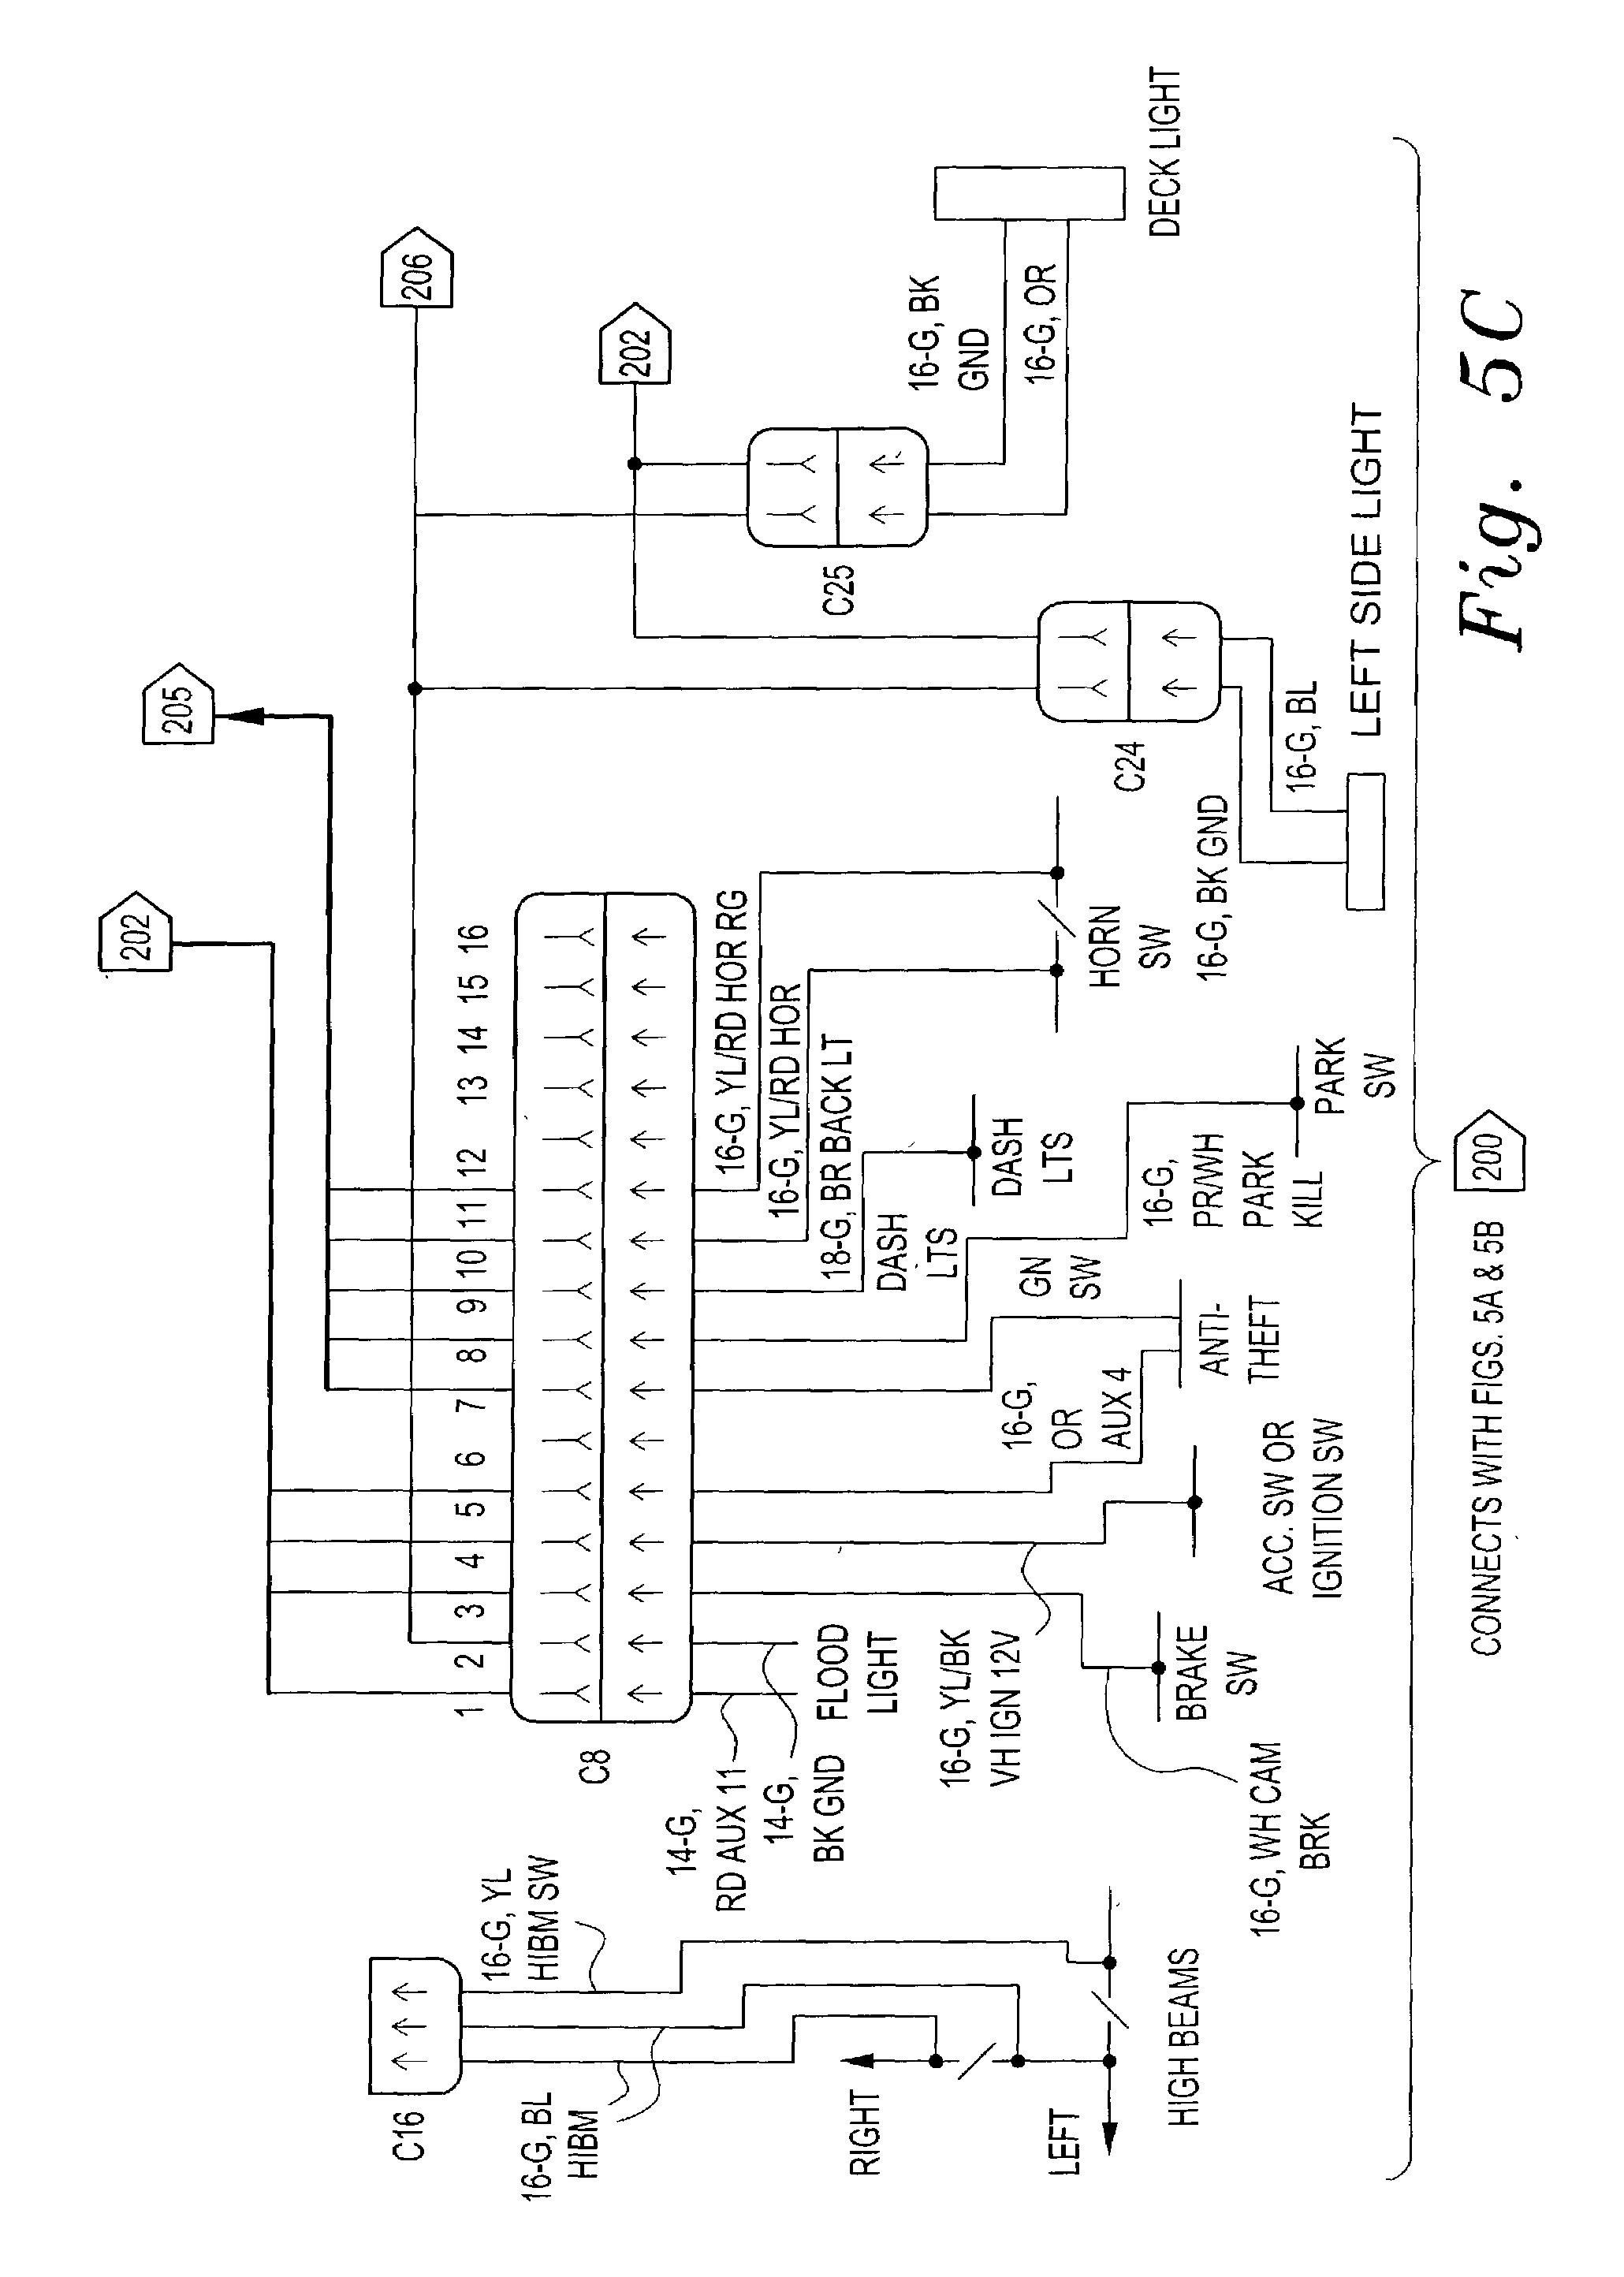 7 Wire Thermostat Wiring Diagram Sample Wiring Diagram Sample Whelen Lights Diagram  Whelen 295hfsa1 Wiring Diagram